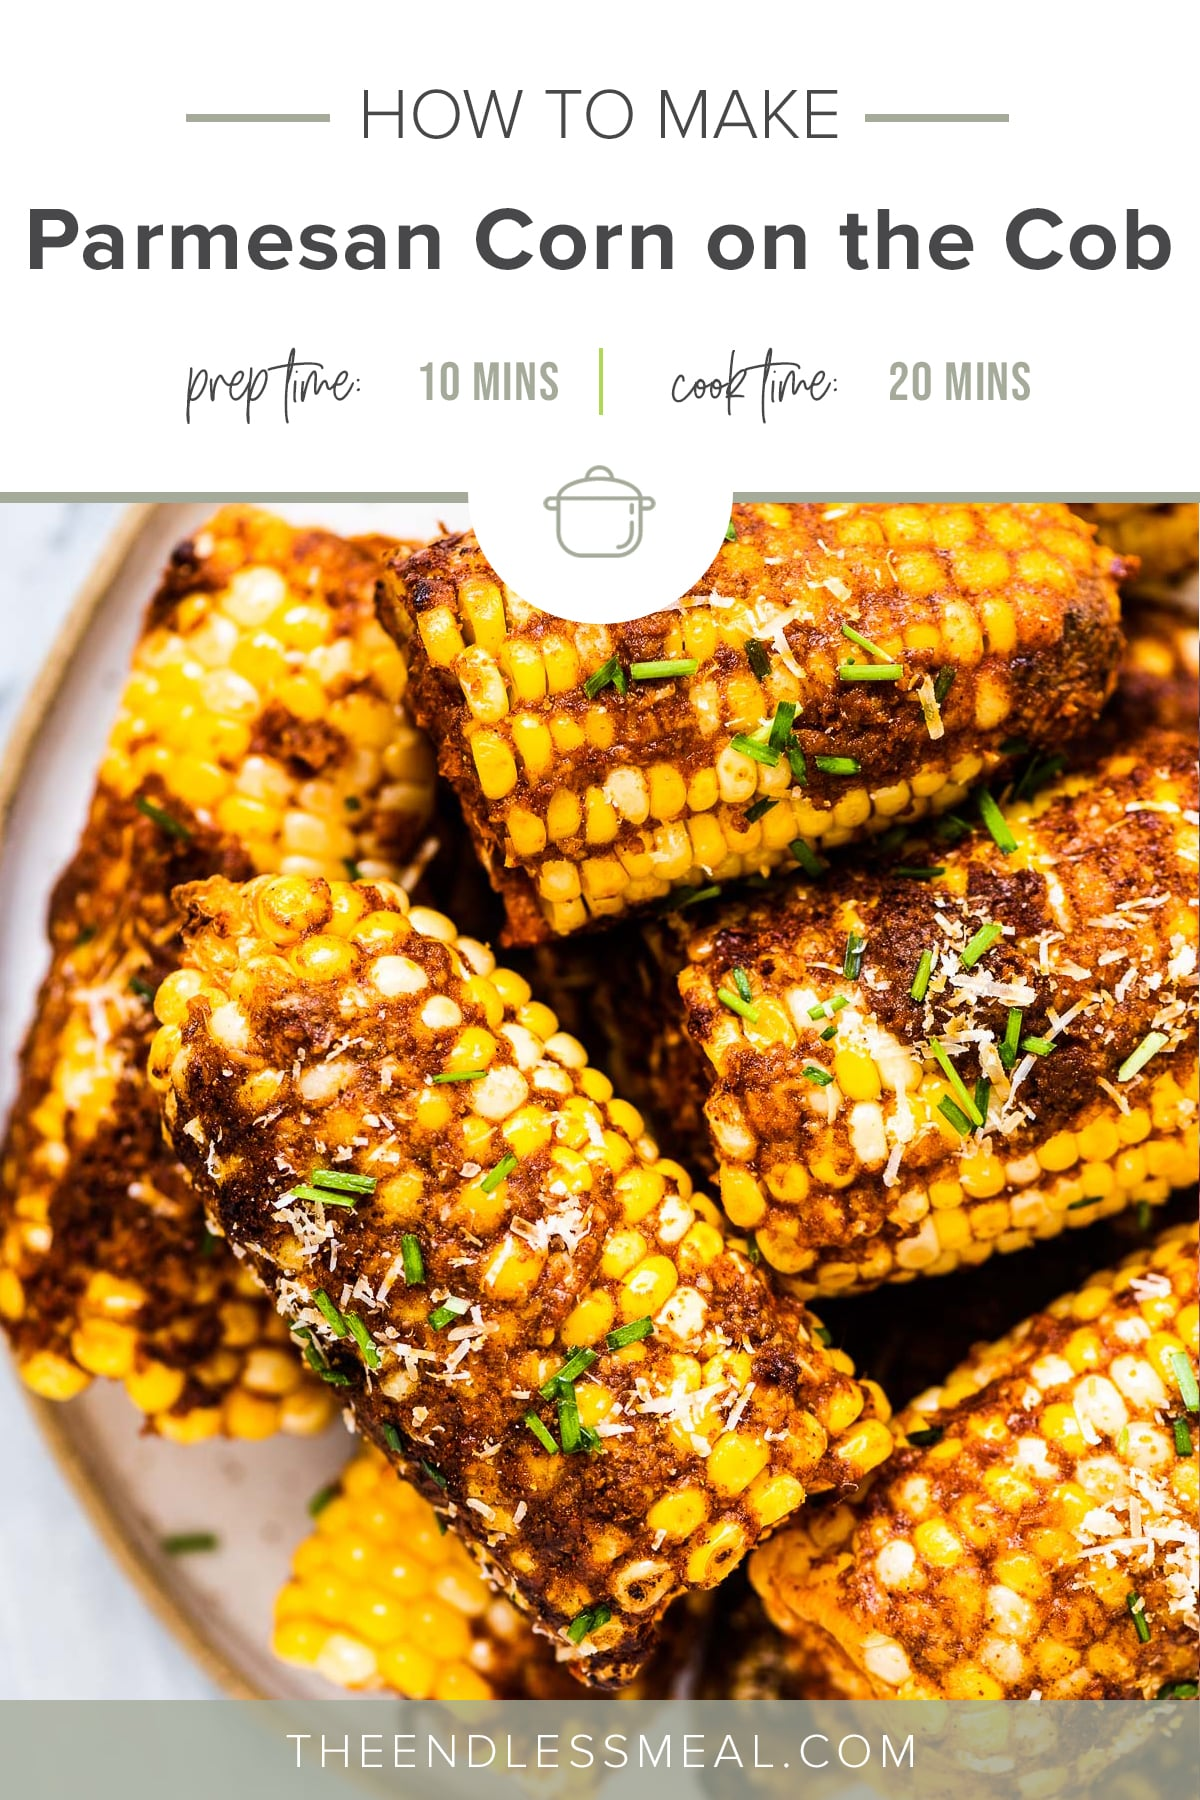 Cheesy corn on the cob piled high on a plate with the recipe title on top of the picture.